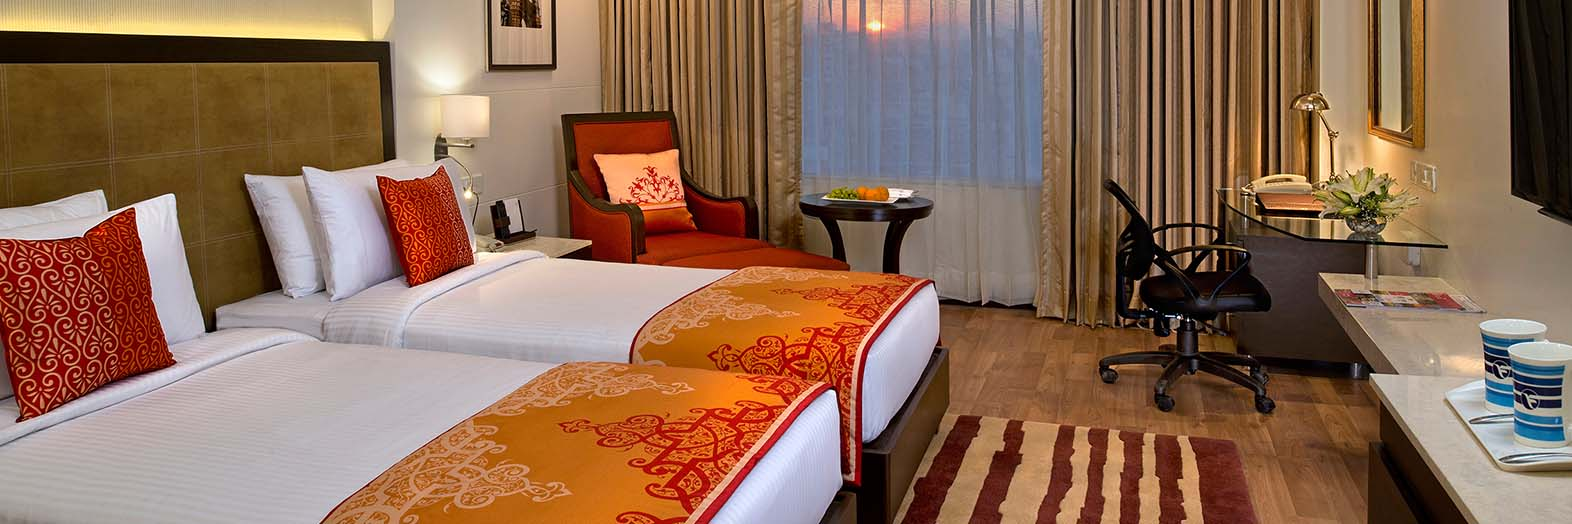 Accomodation in Rajkot